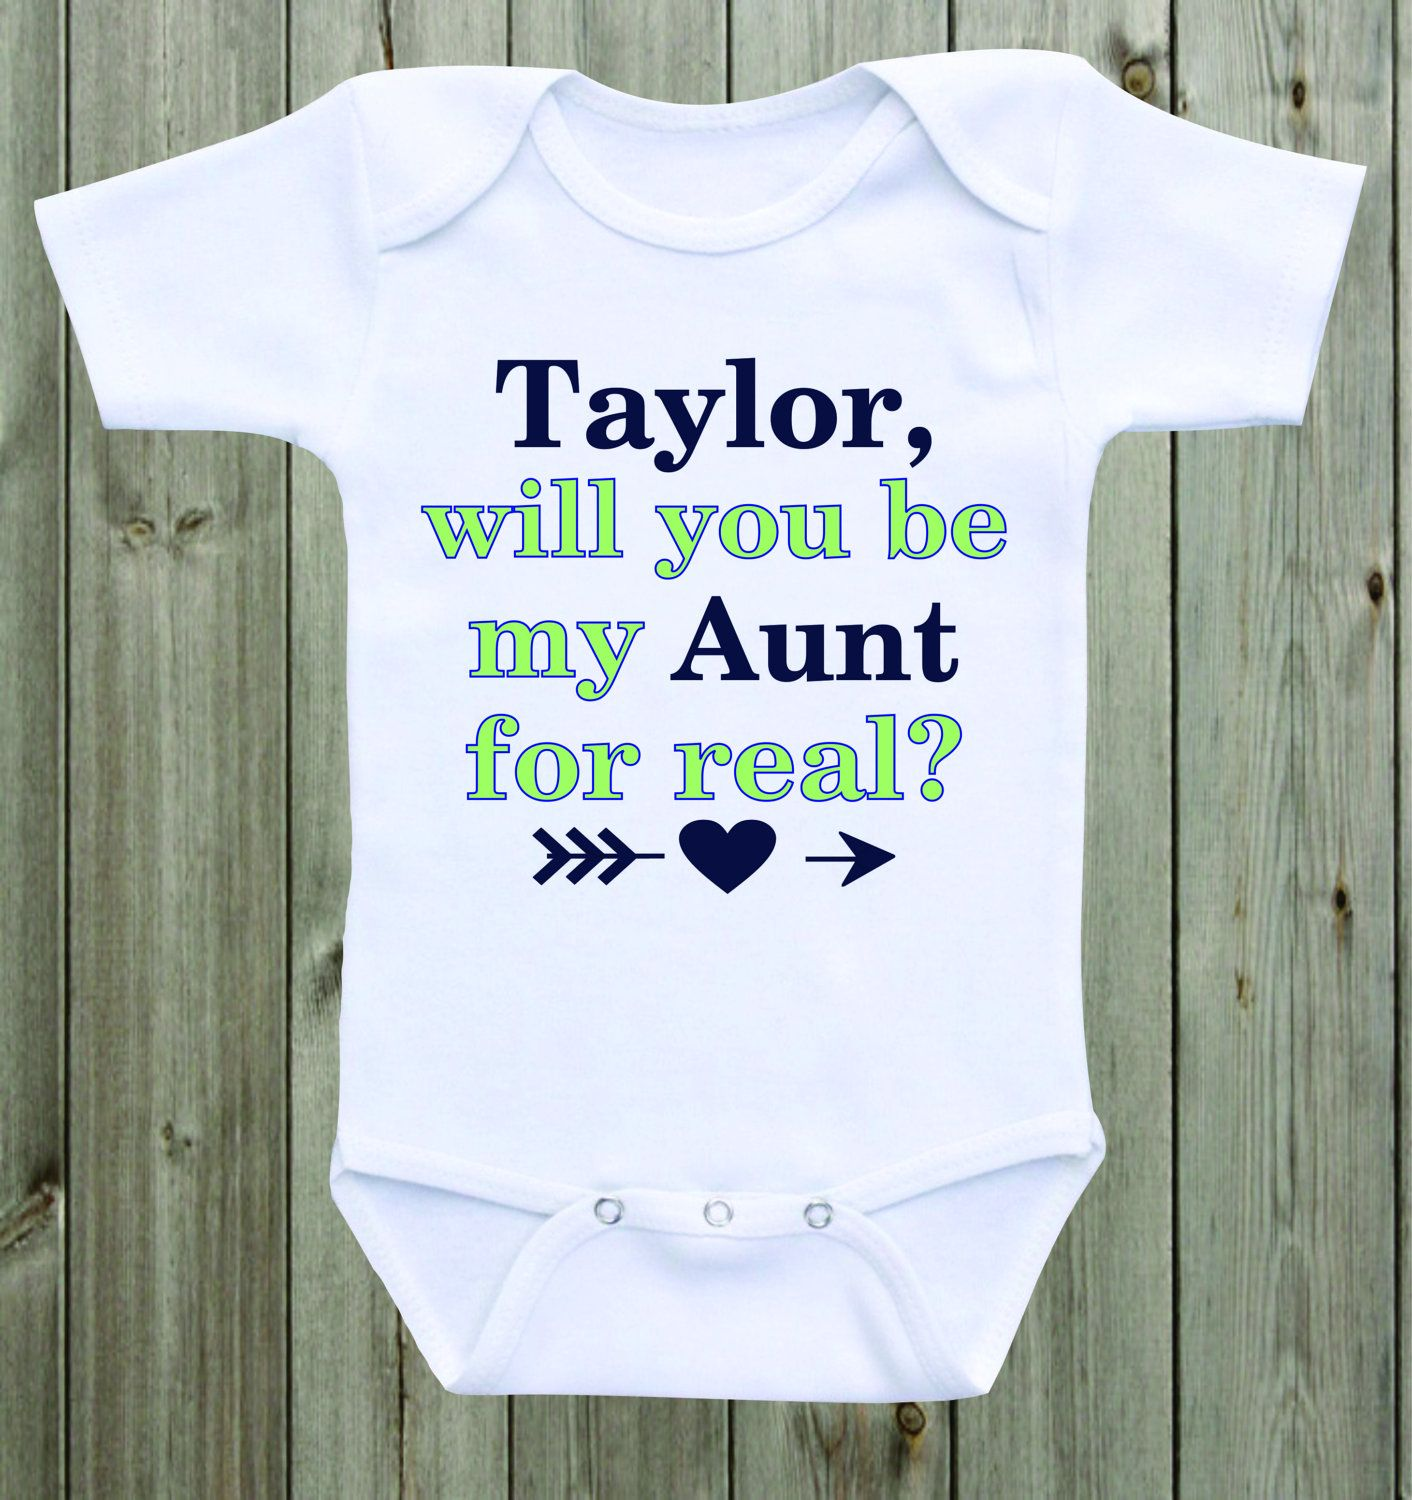 Will you be my aunt marriage proposal baby onesie custom onesie will you be my aunt marriage proposal baby onesie custom onesie wedding proposal ideas engagement baby negle Image collections